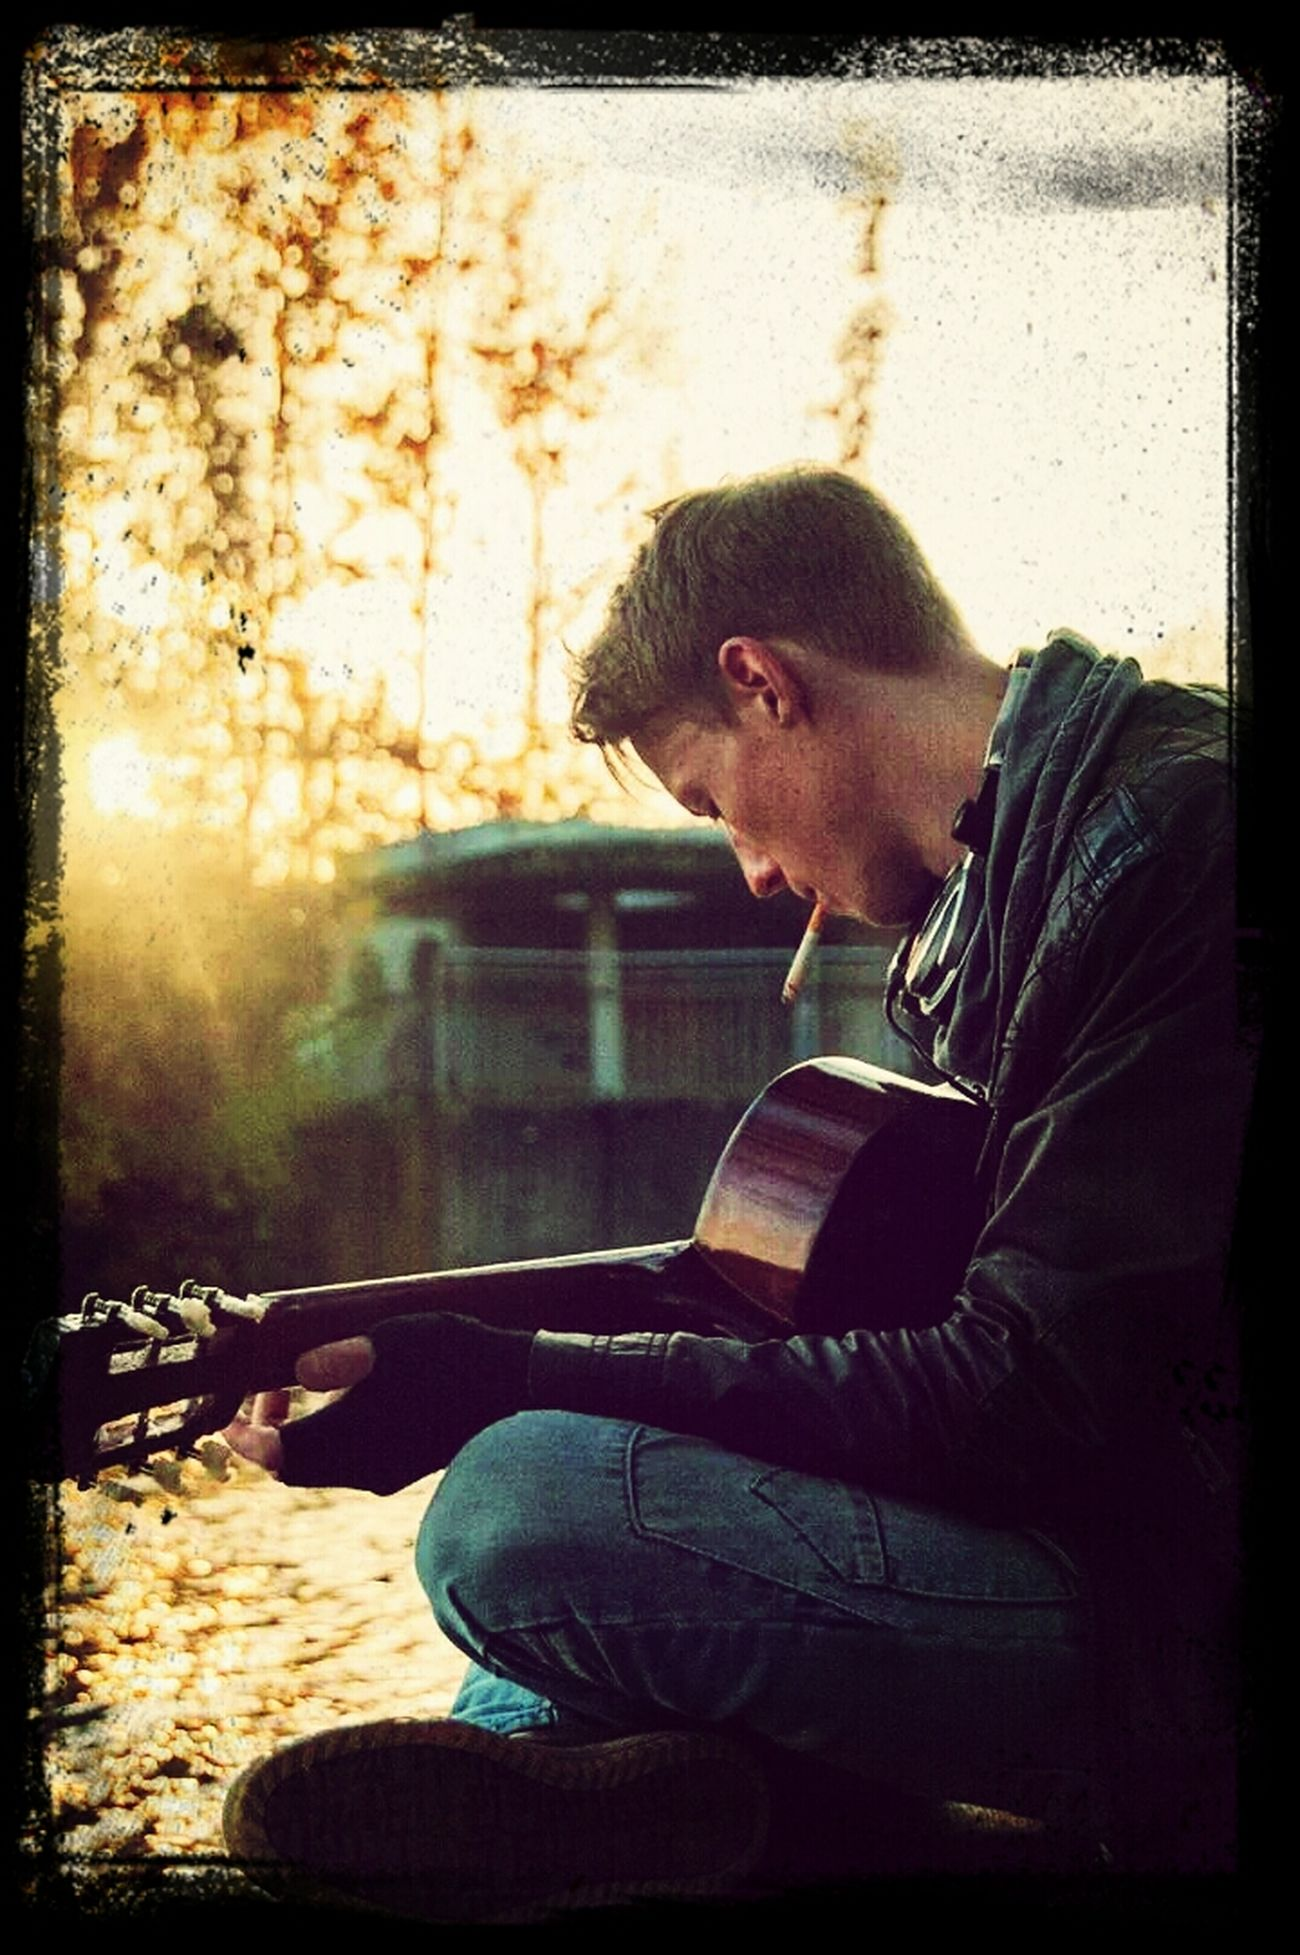 Me and my guitar.. listen to the sound of water